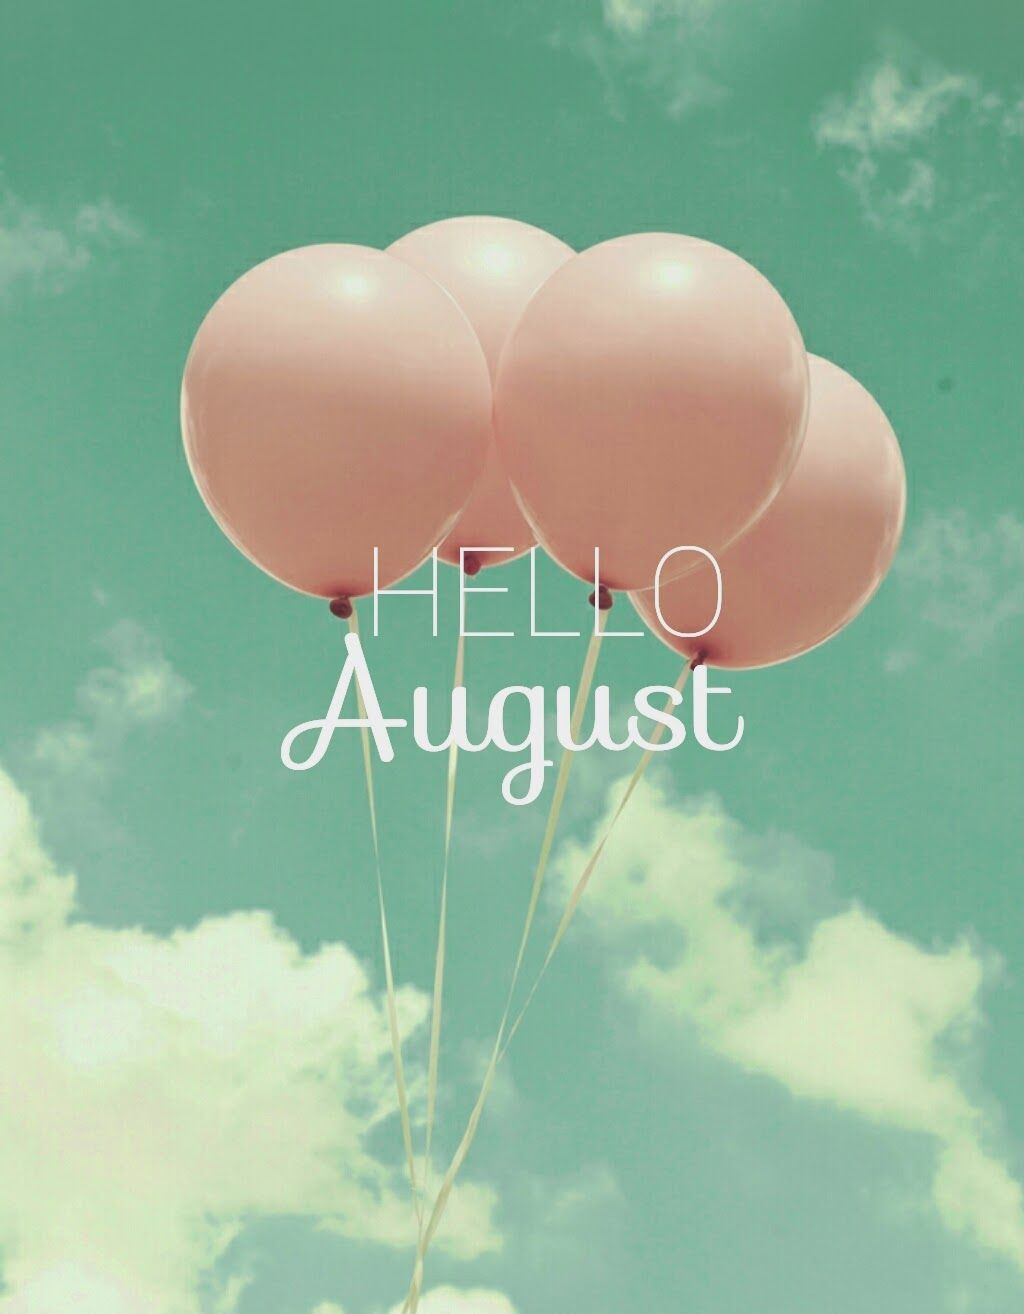 august birthday wallpaper pictures ; 7a6bc202f99764d72d5cdd3d5d1e53cf